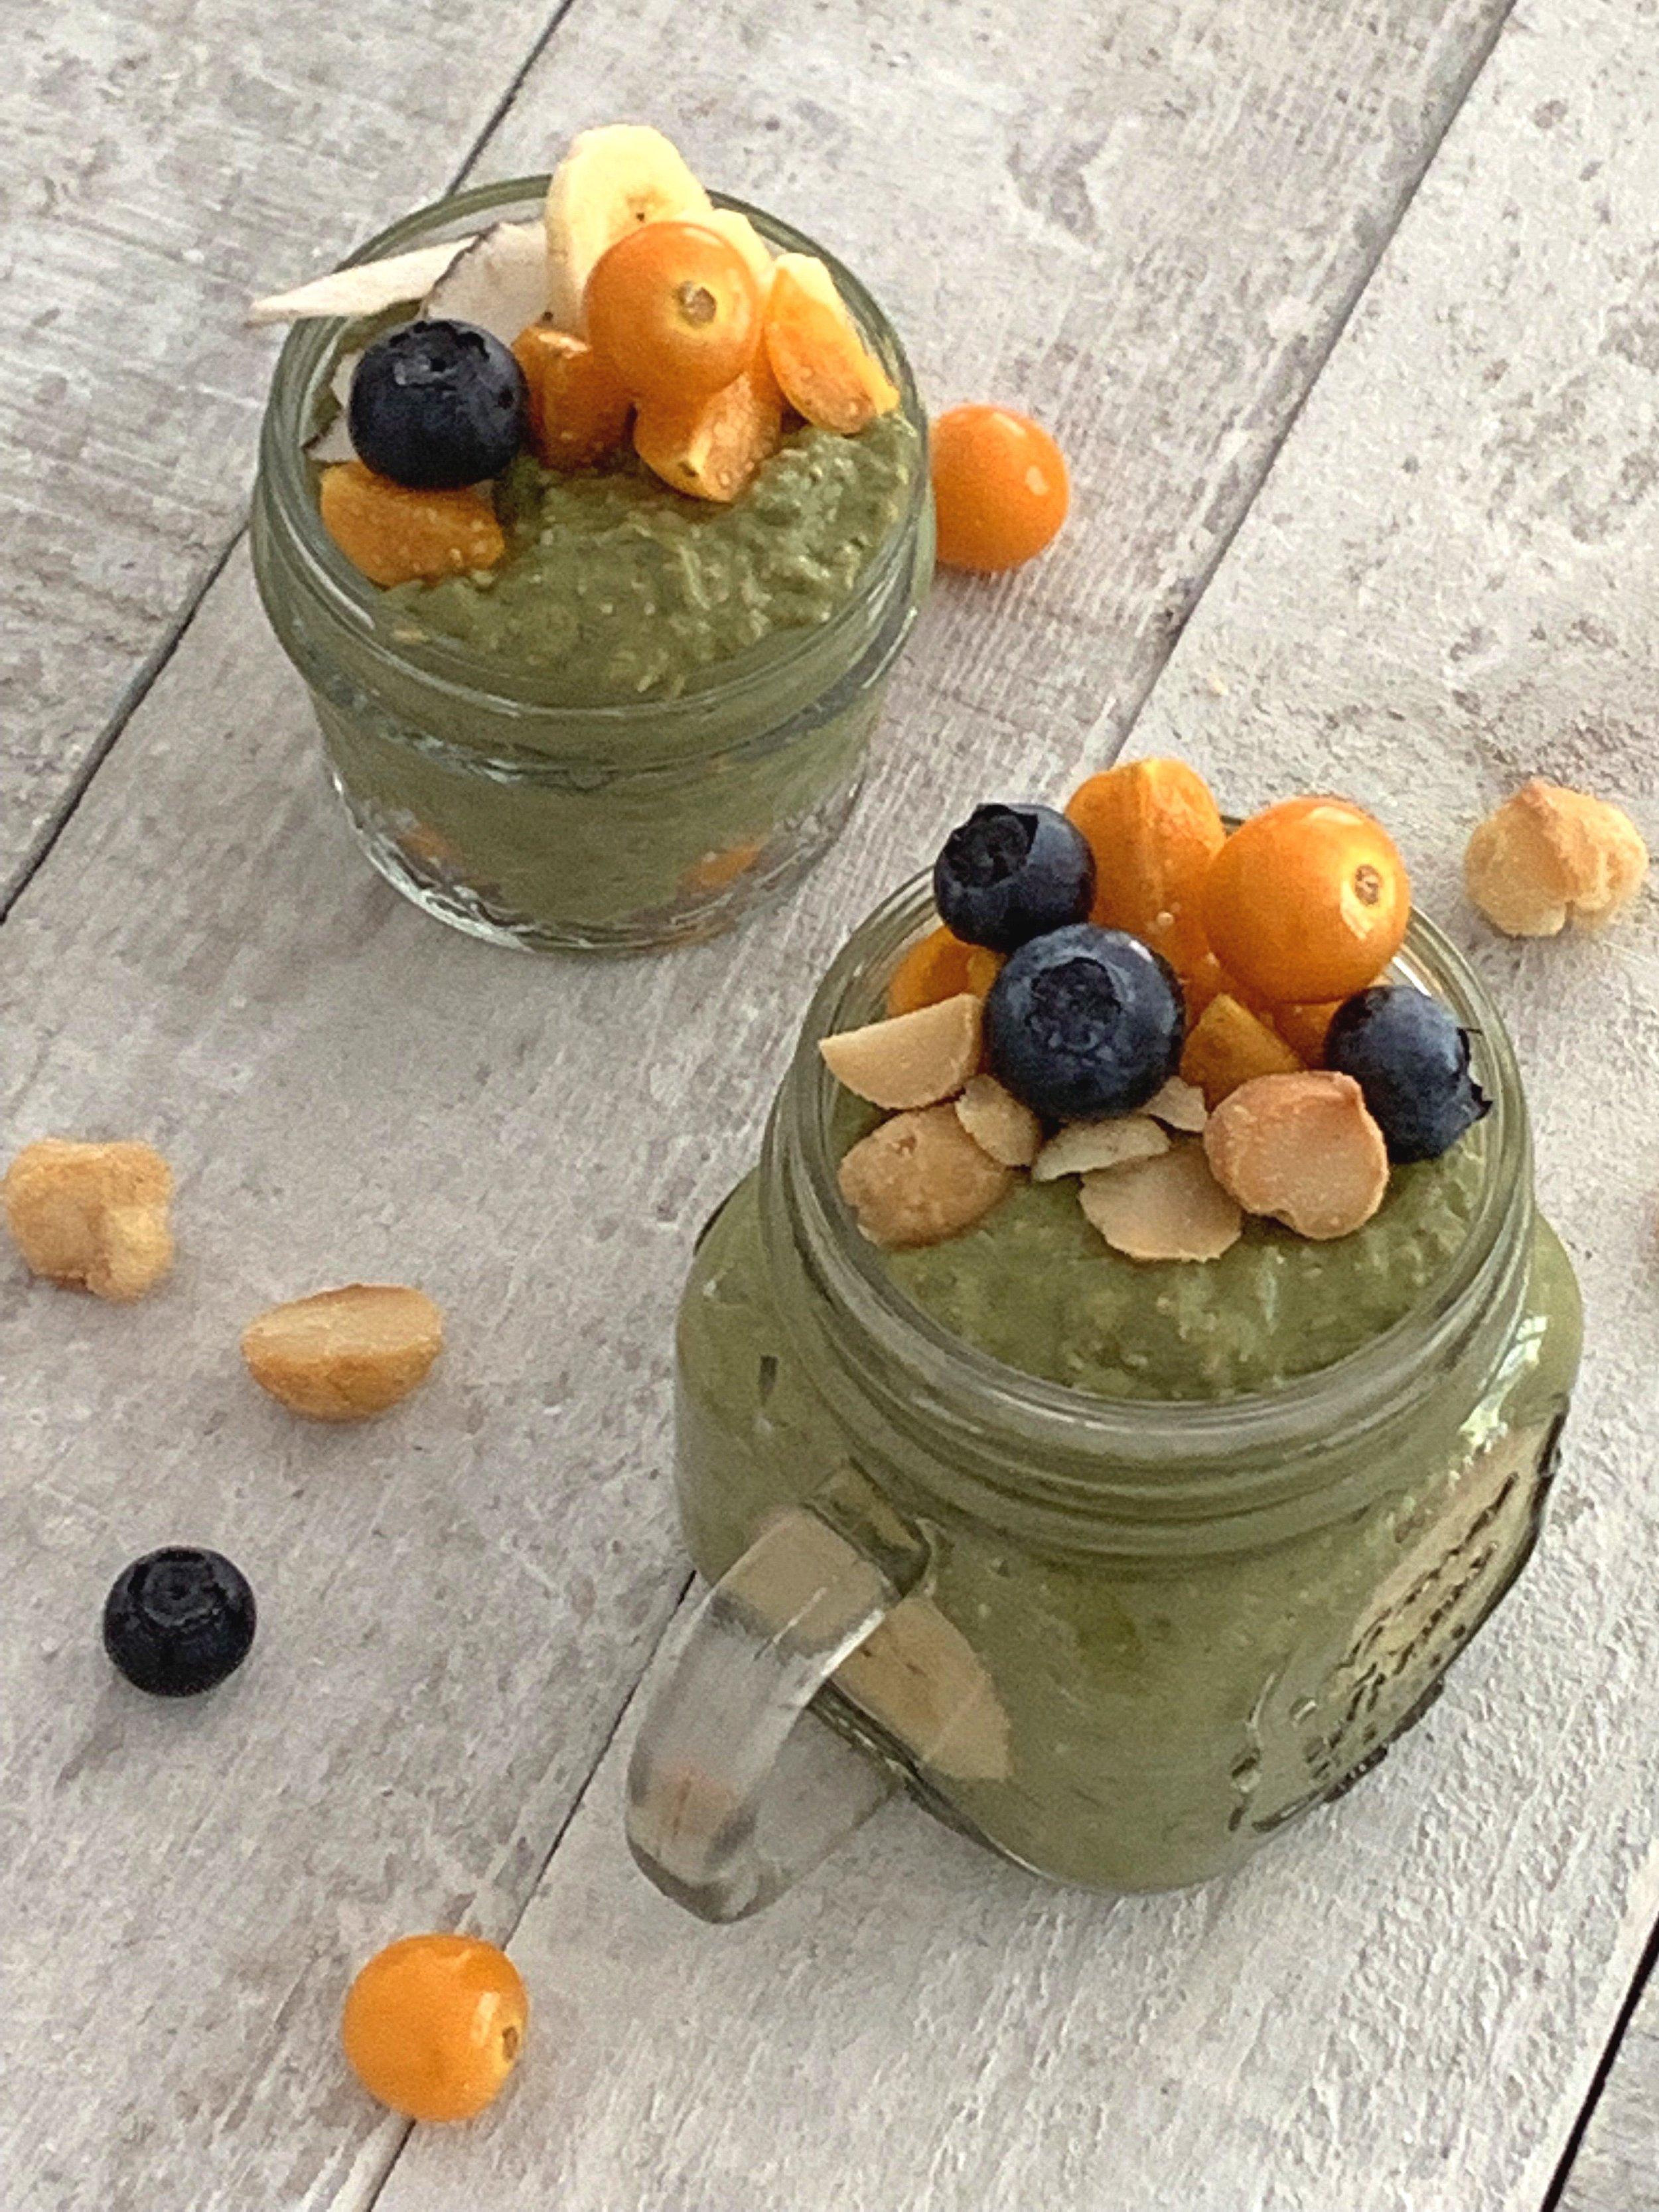 Matcha Coconut Chia Pudding made with Nuzest Clean Lean protein and topped with blueberries, golden berries, and macadamia nuts.